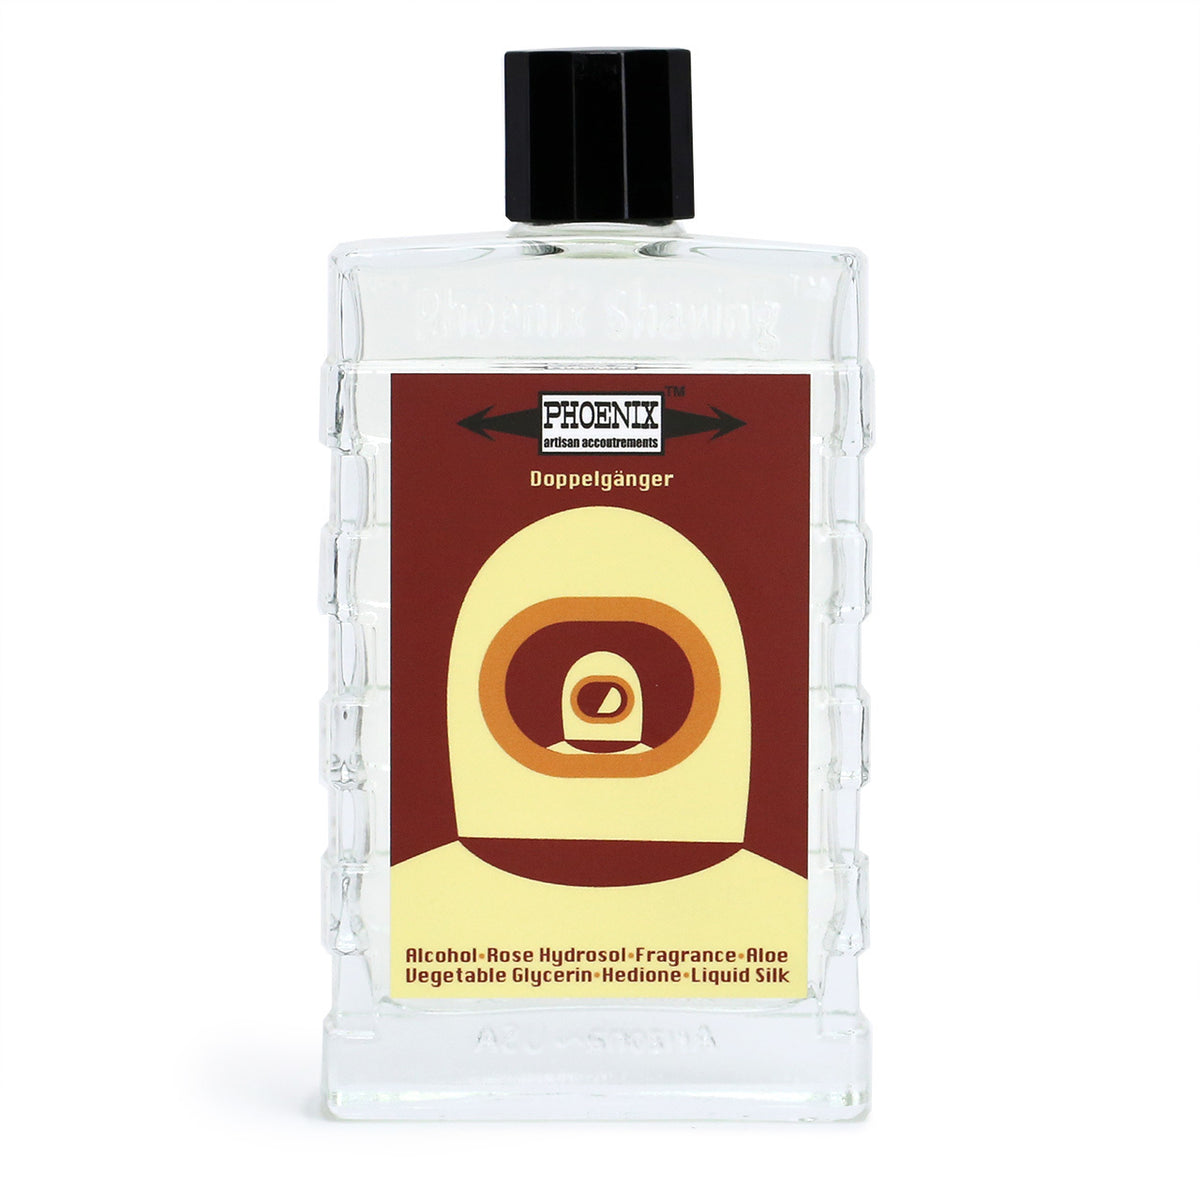 Phoenix Shaving Doppelgänger Ox Blood After Shave & Cologne - Homage to Sartorial